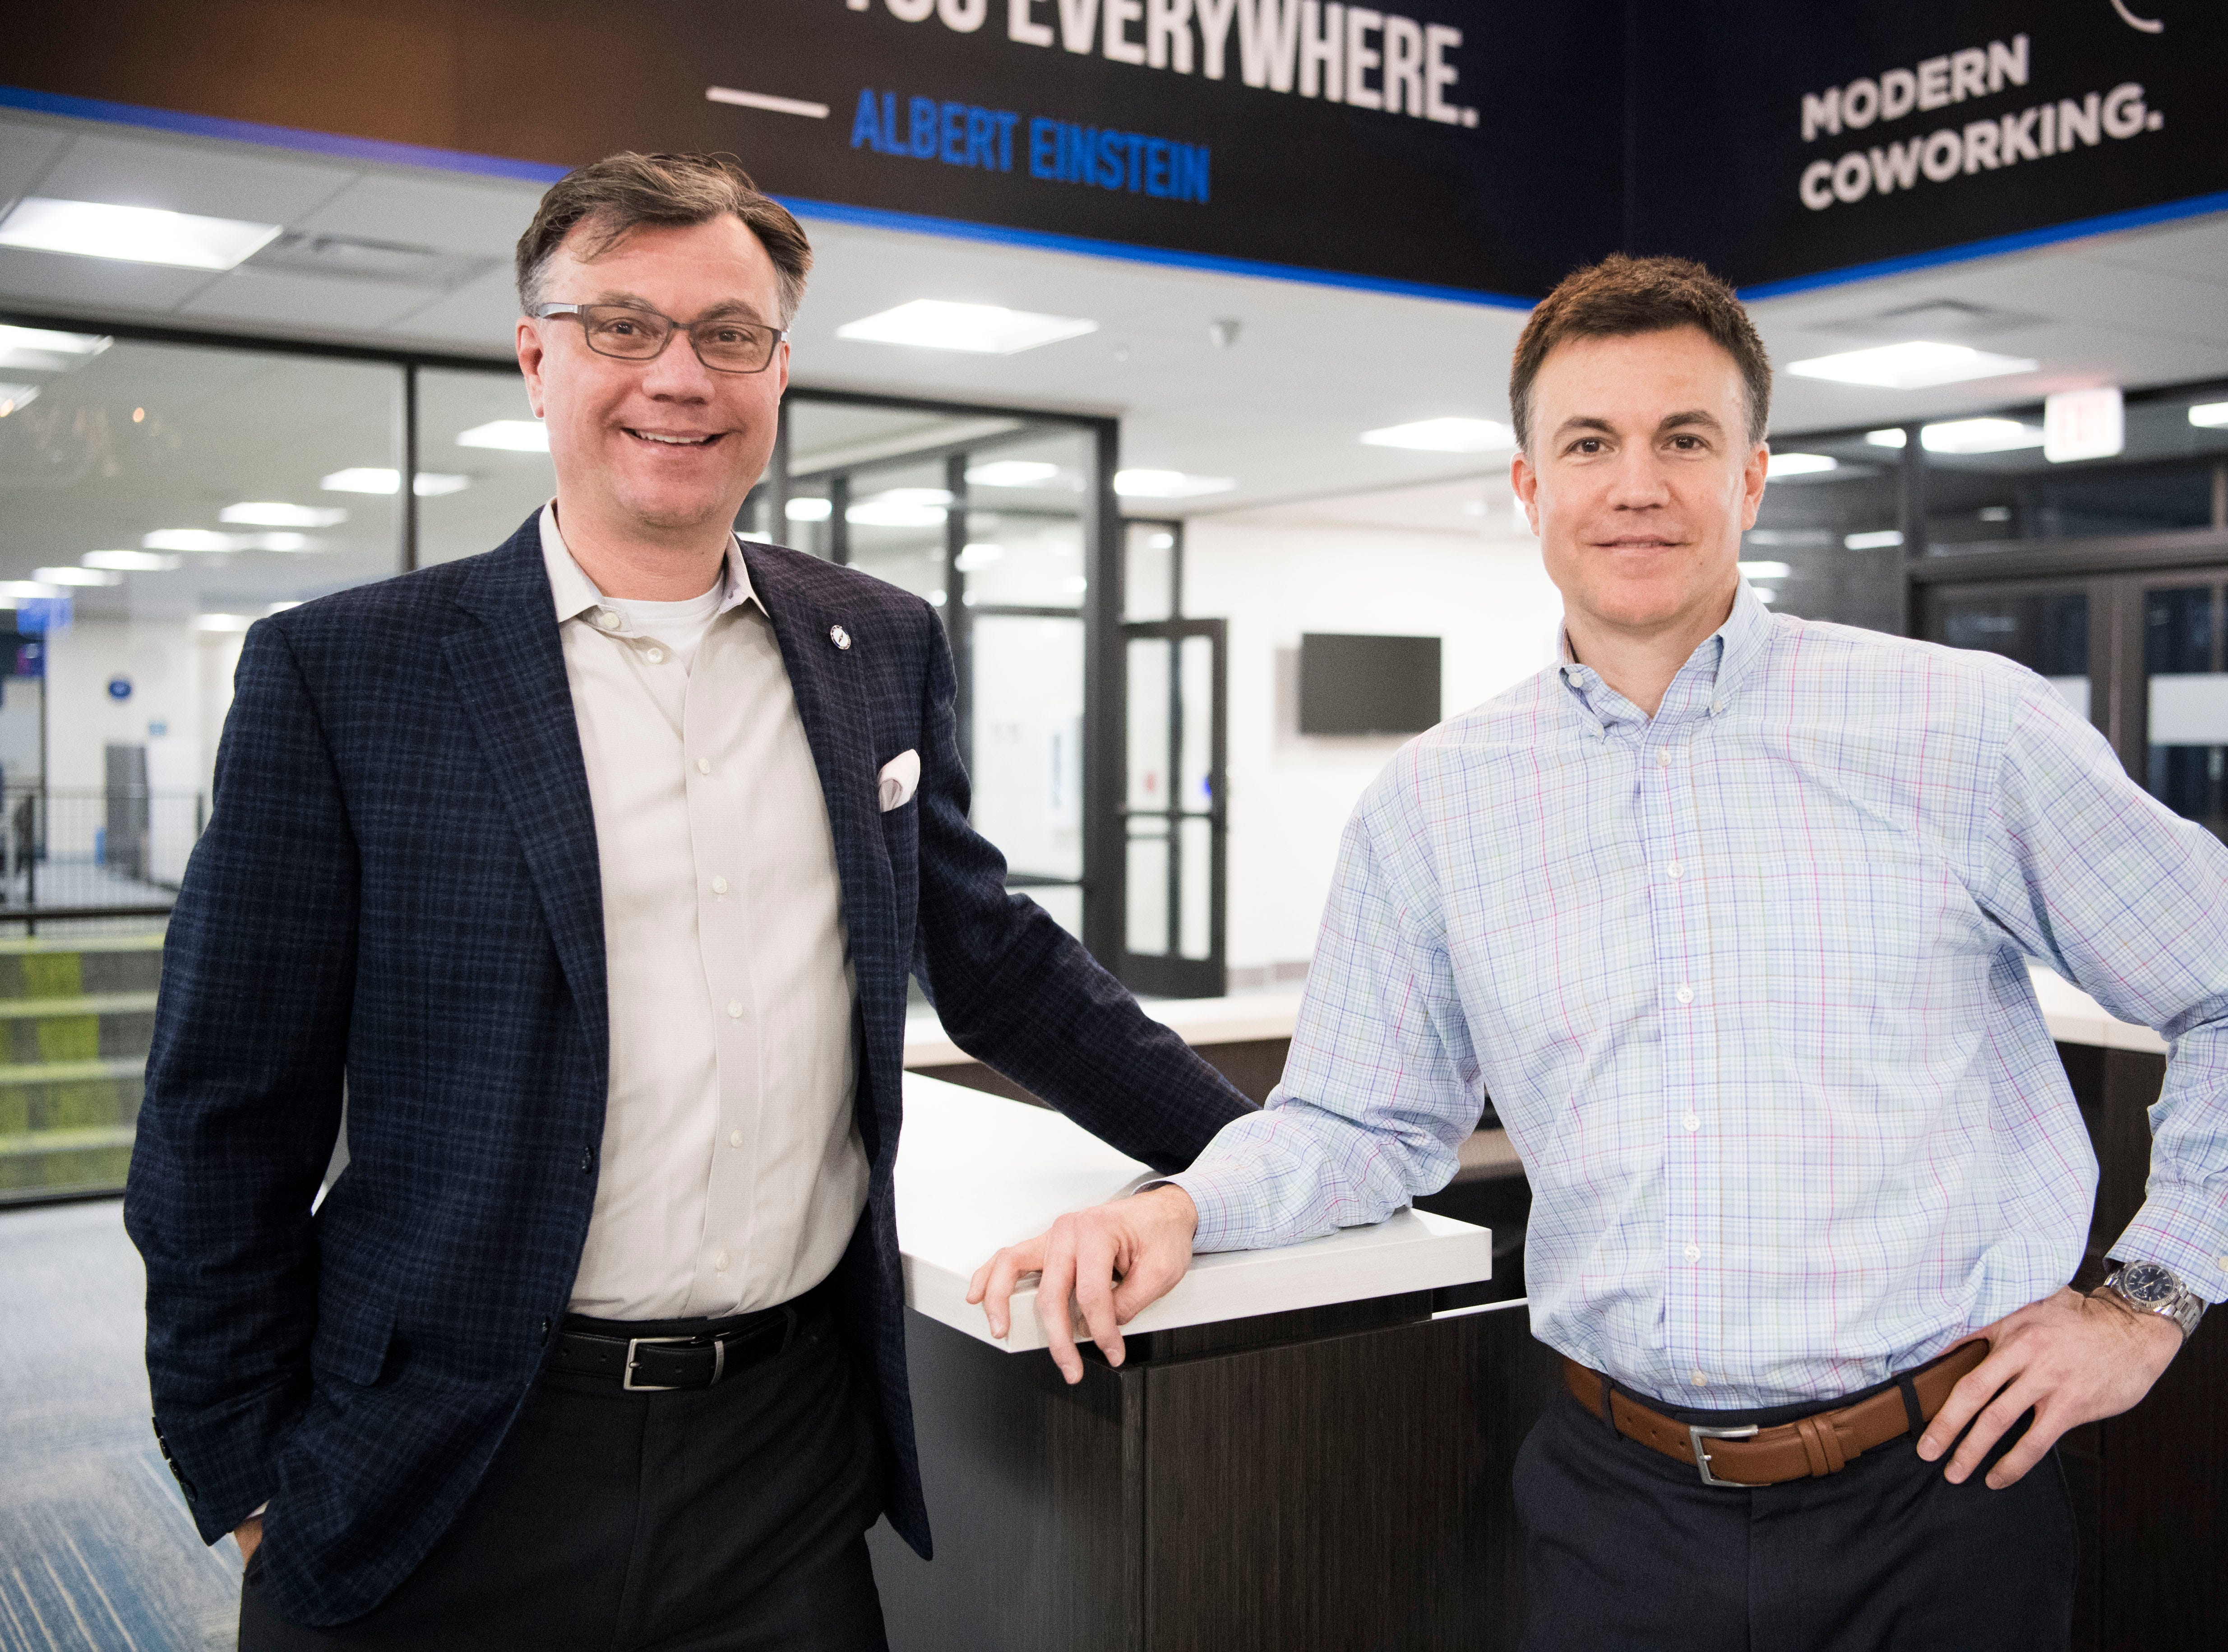 Brothers Rick Chinn, at left, and Ryan, pose for a photo in the lobby at Ts117, a new coworking space in Oak Ridge owned and run by them, Tuesday, Feb. 19, 2019.